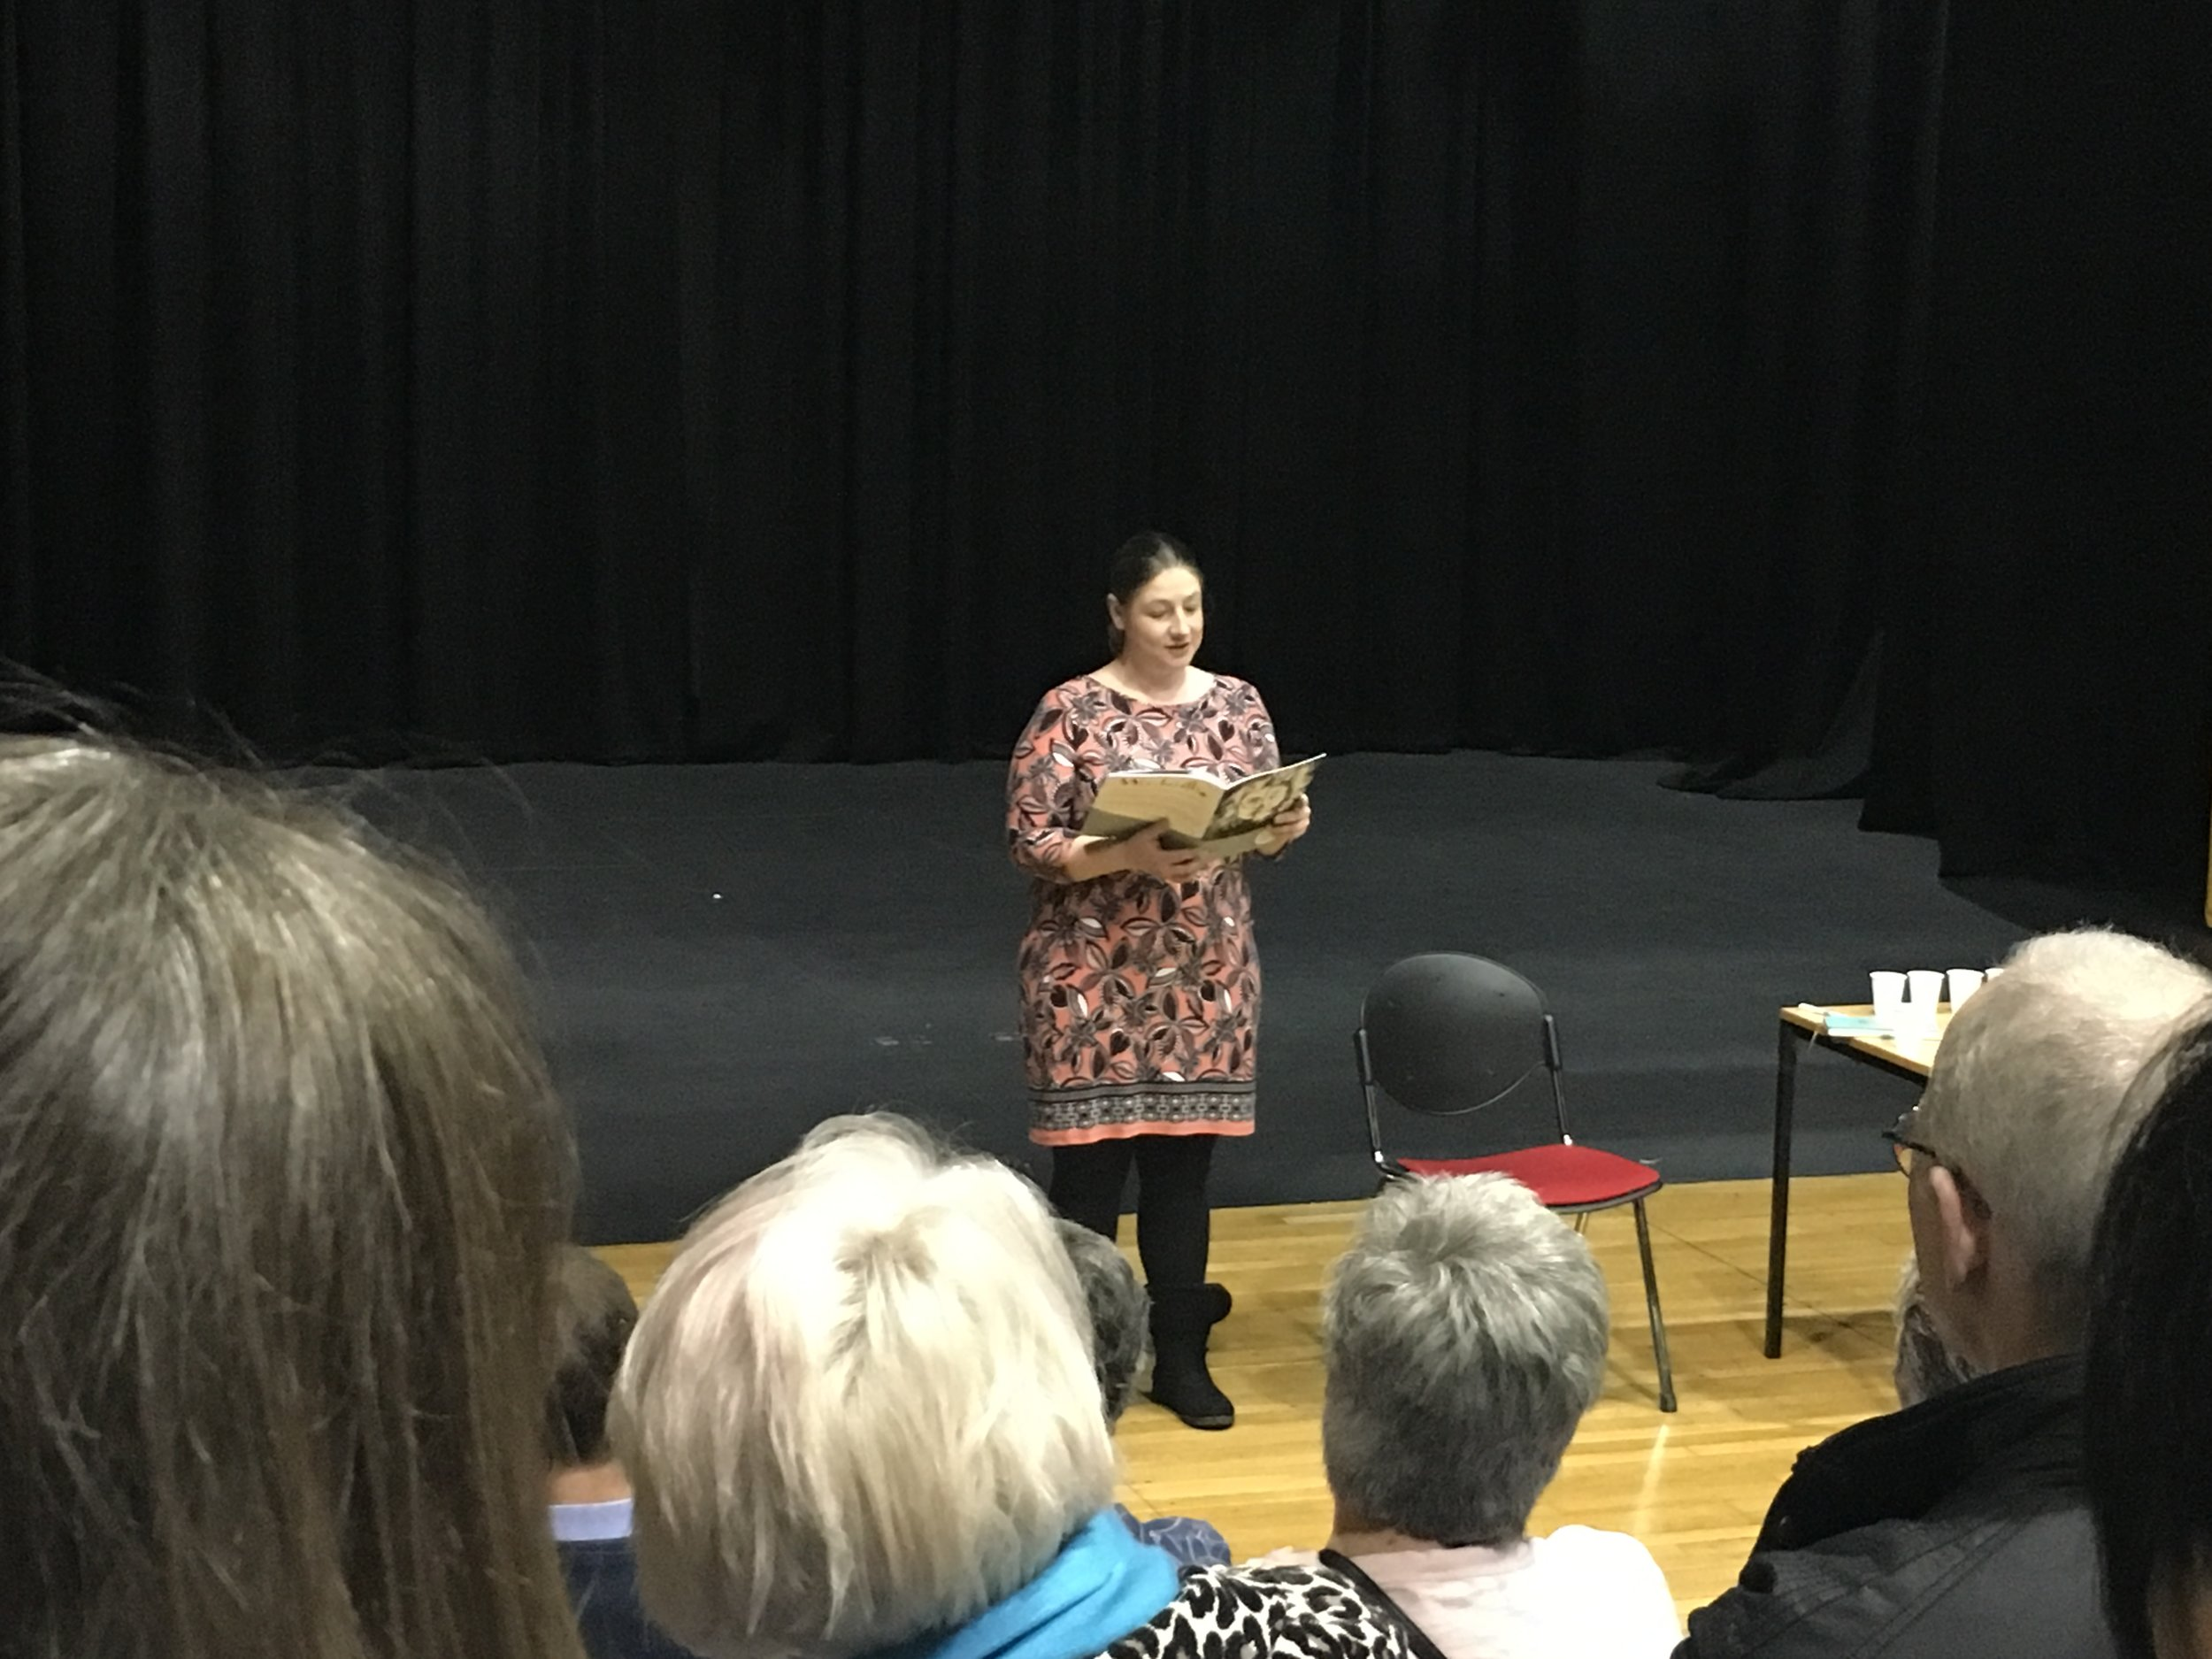 Next, we welcomed Chair of  Nottingham Writers' Studio , Sarah Hindmarsh, to read not one, not two but THREE pieces published in this issue!